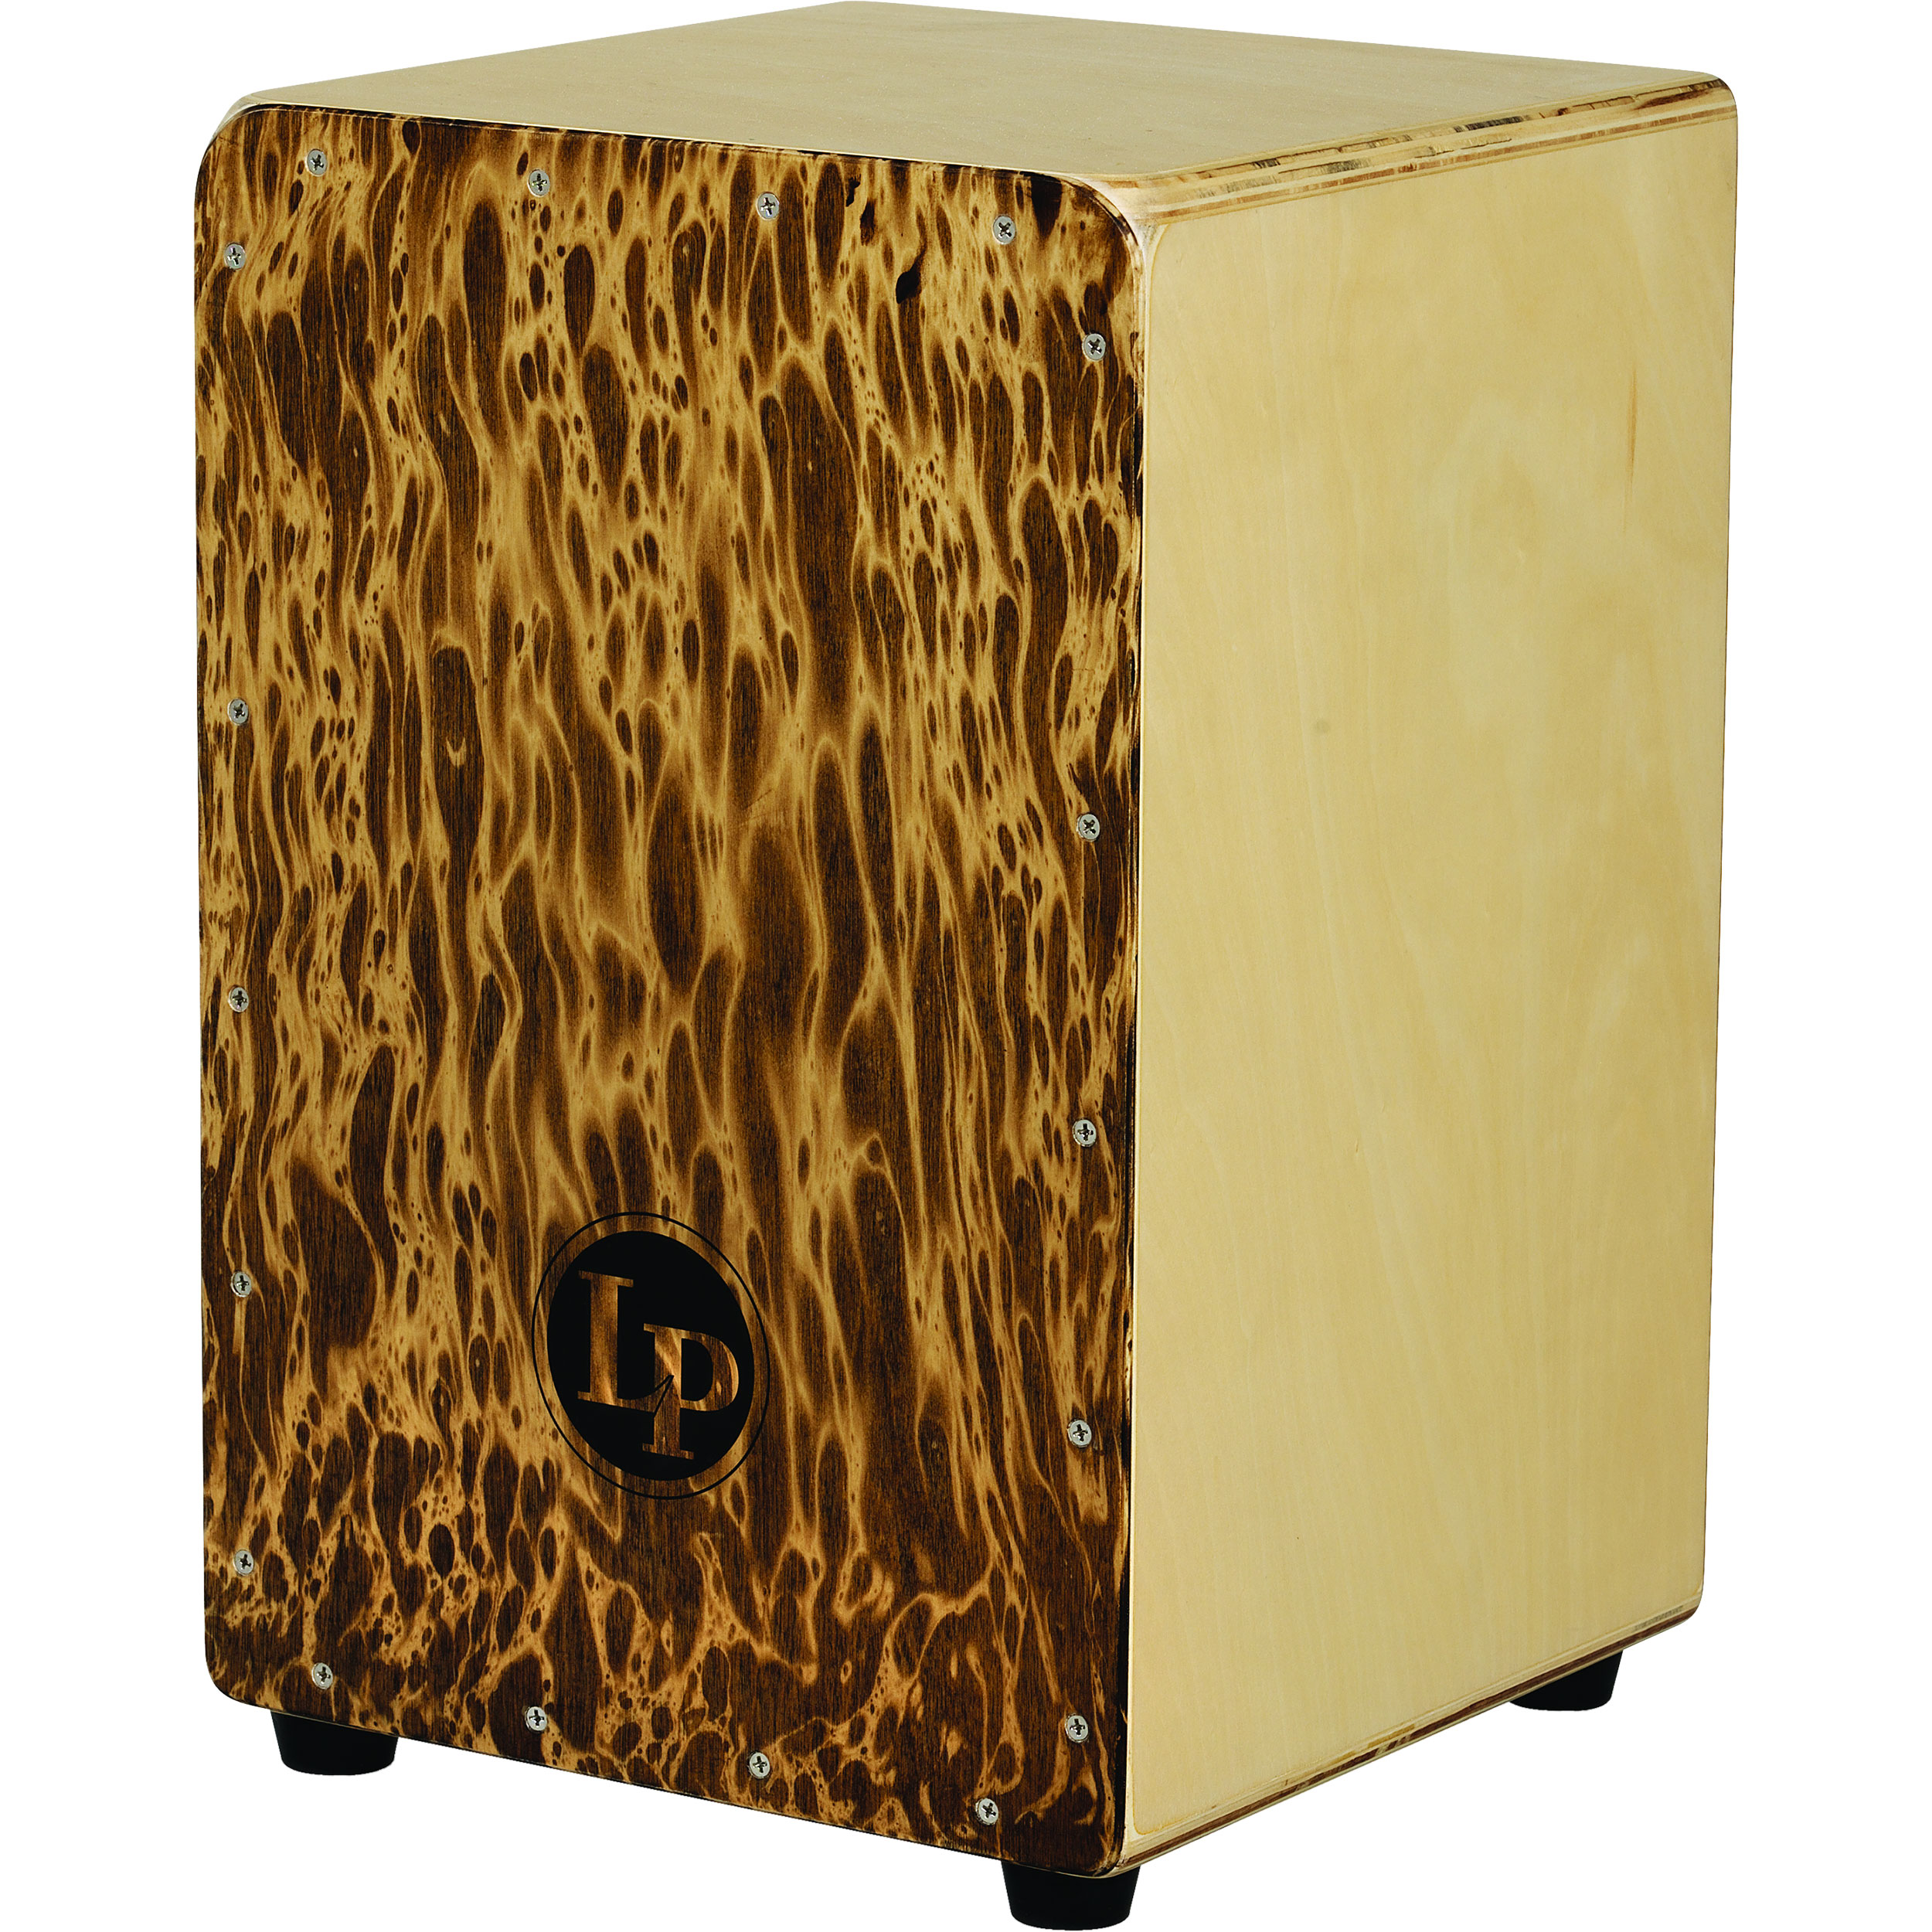 LP Aspire Series Wire Cajon in Havana Cafe